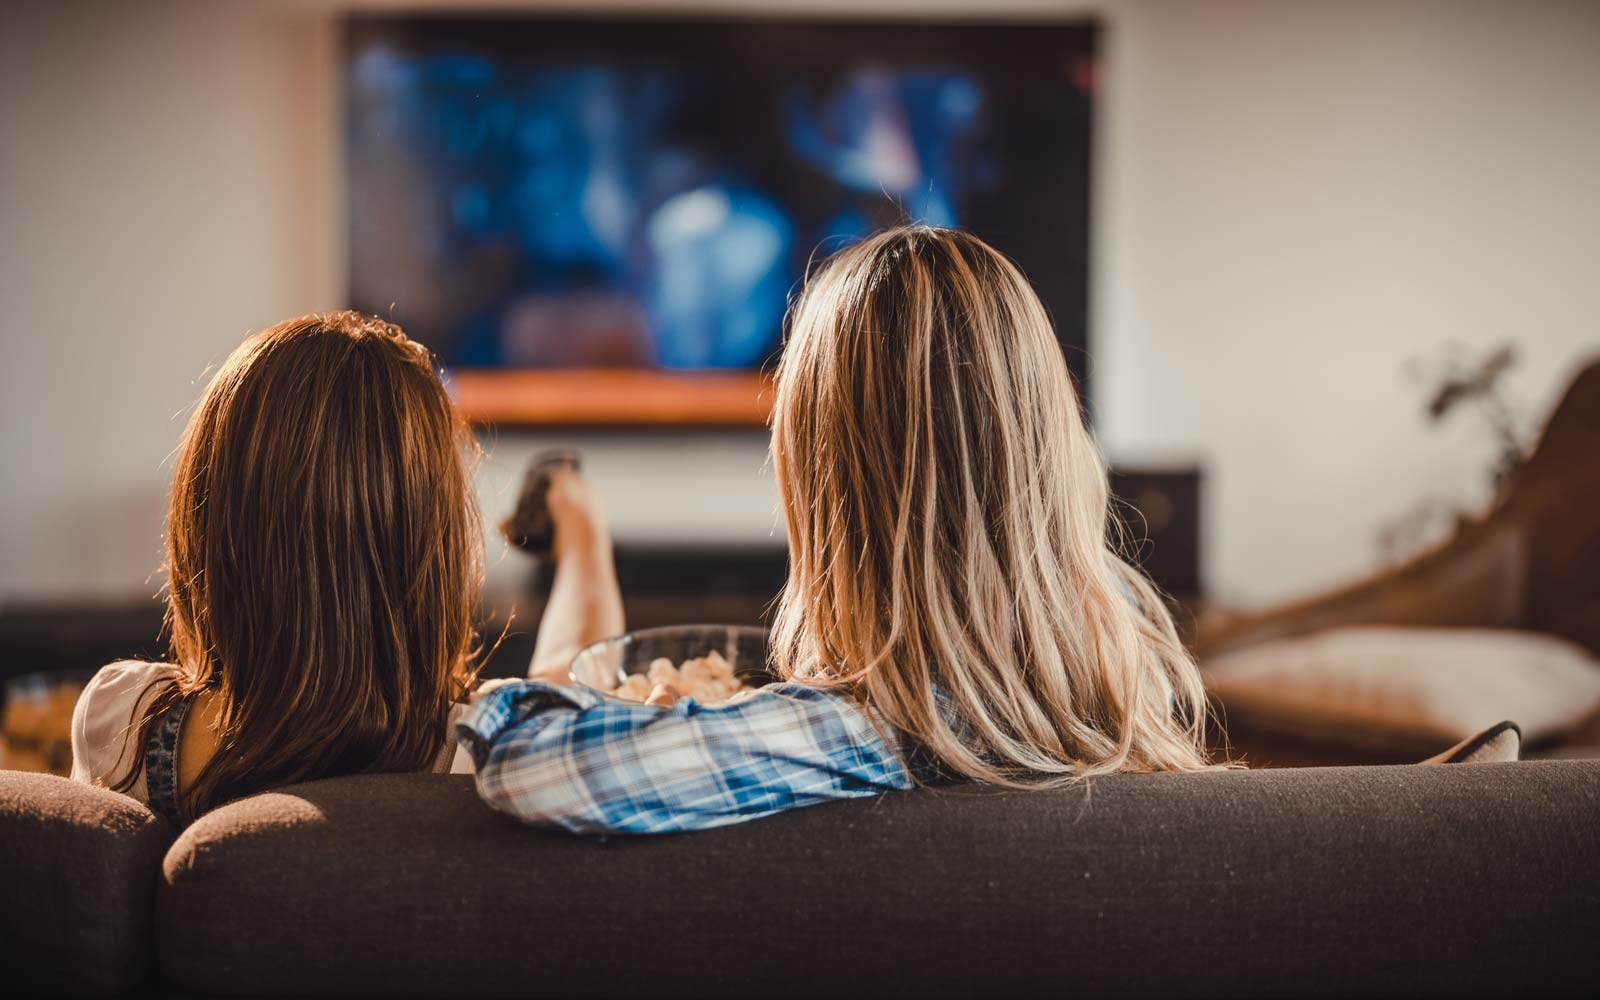 Rear view of two women relaxing on sofa in the living room and watching a movie on TV.